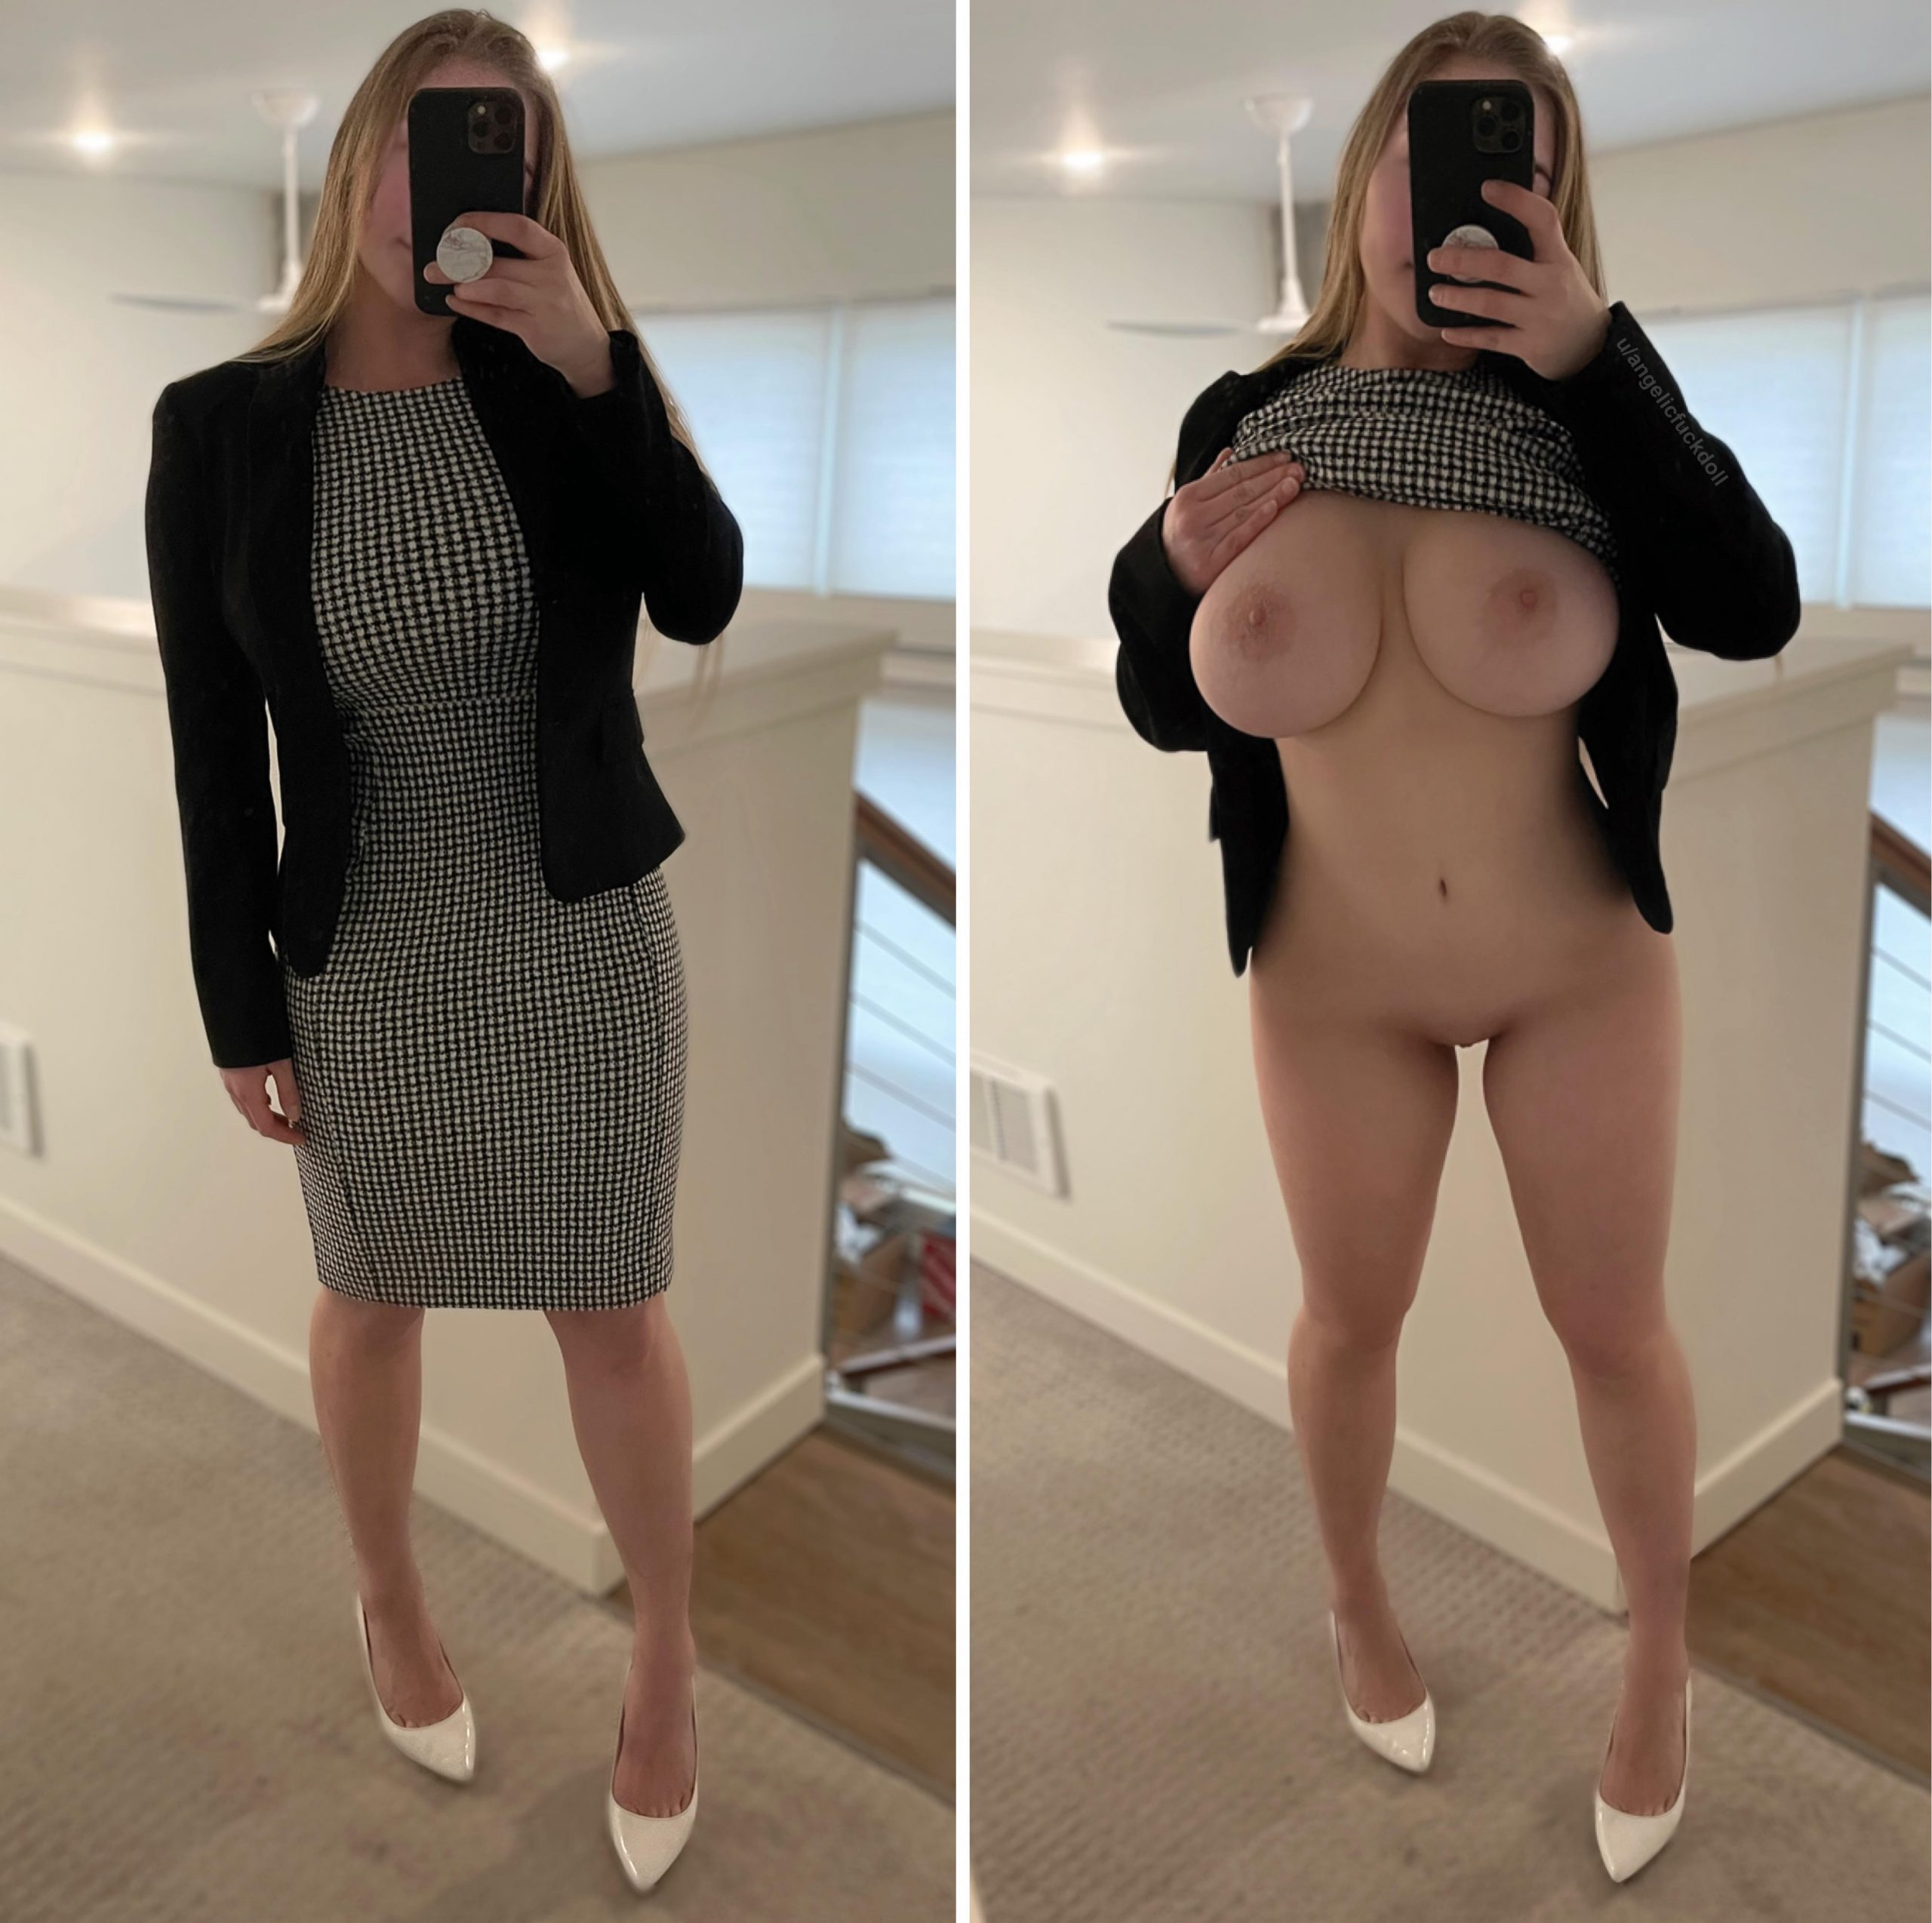 I didn't wear a bra or panties to my interview, I wonder if anyone noticed…